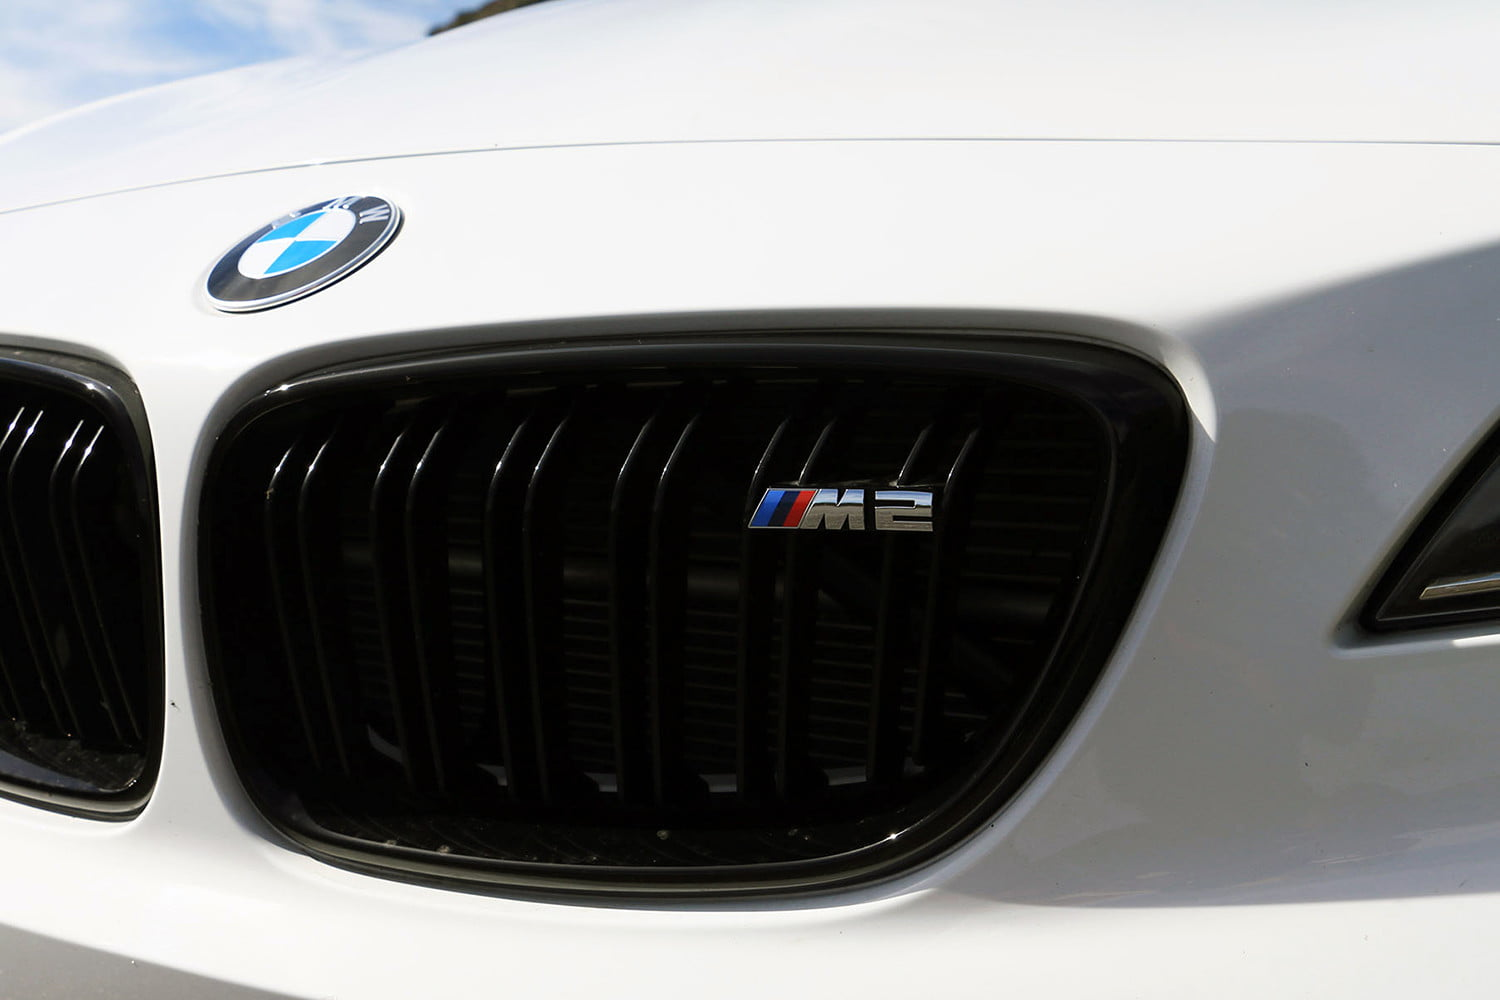 bmw tuner dinan gives the m2 a performance focused makeover we go for spin img 5523